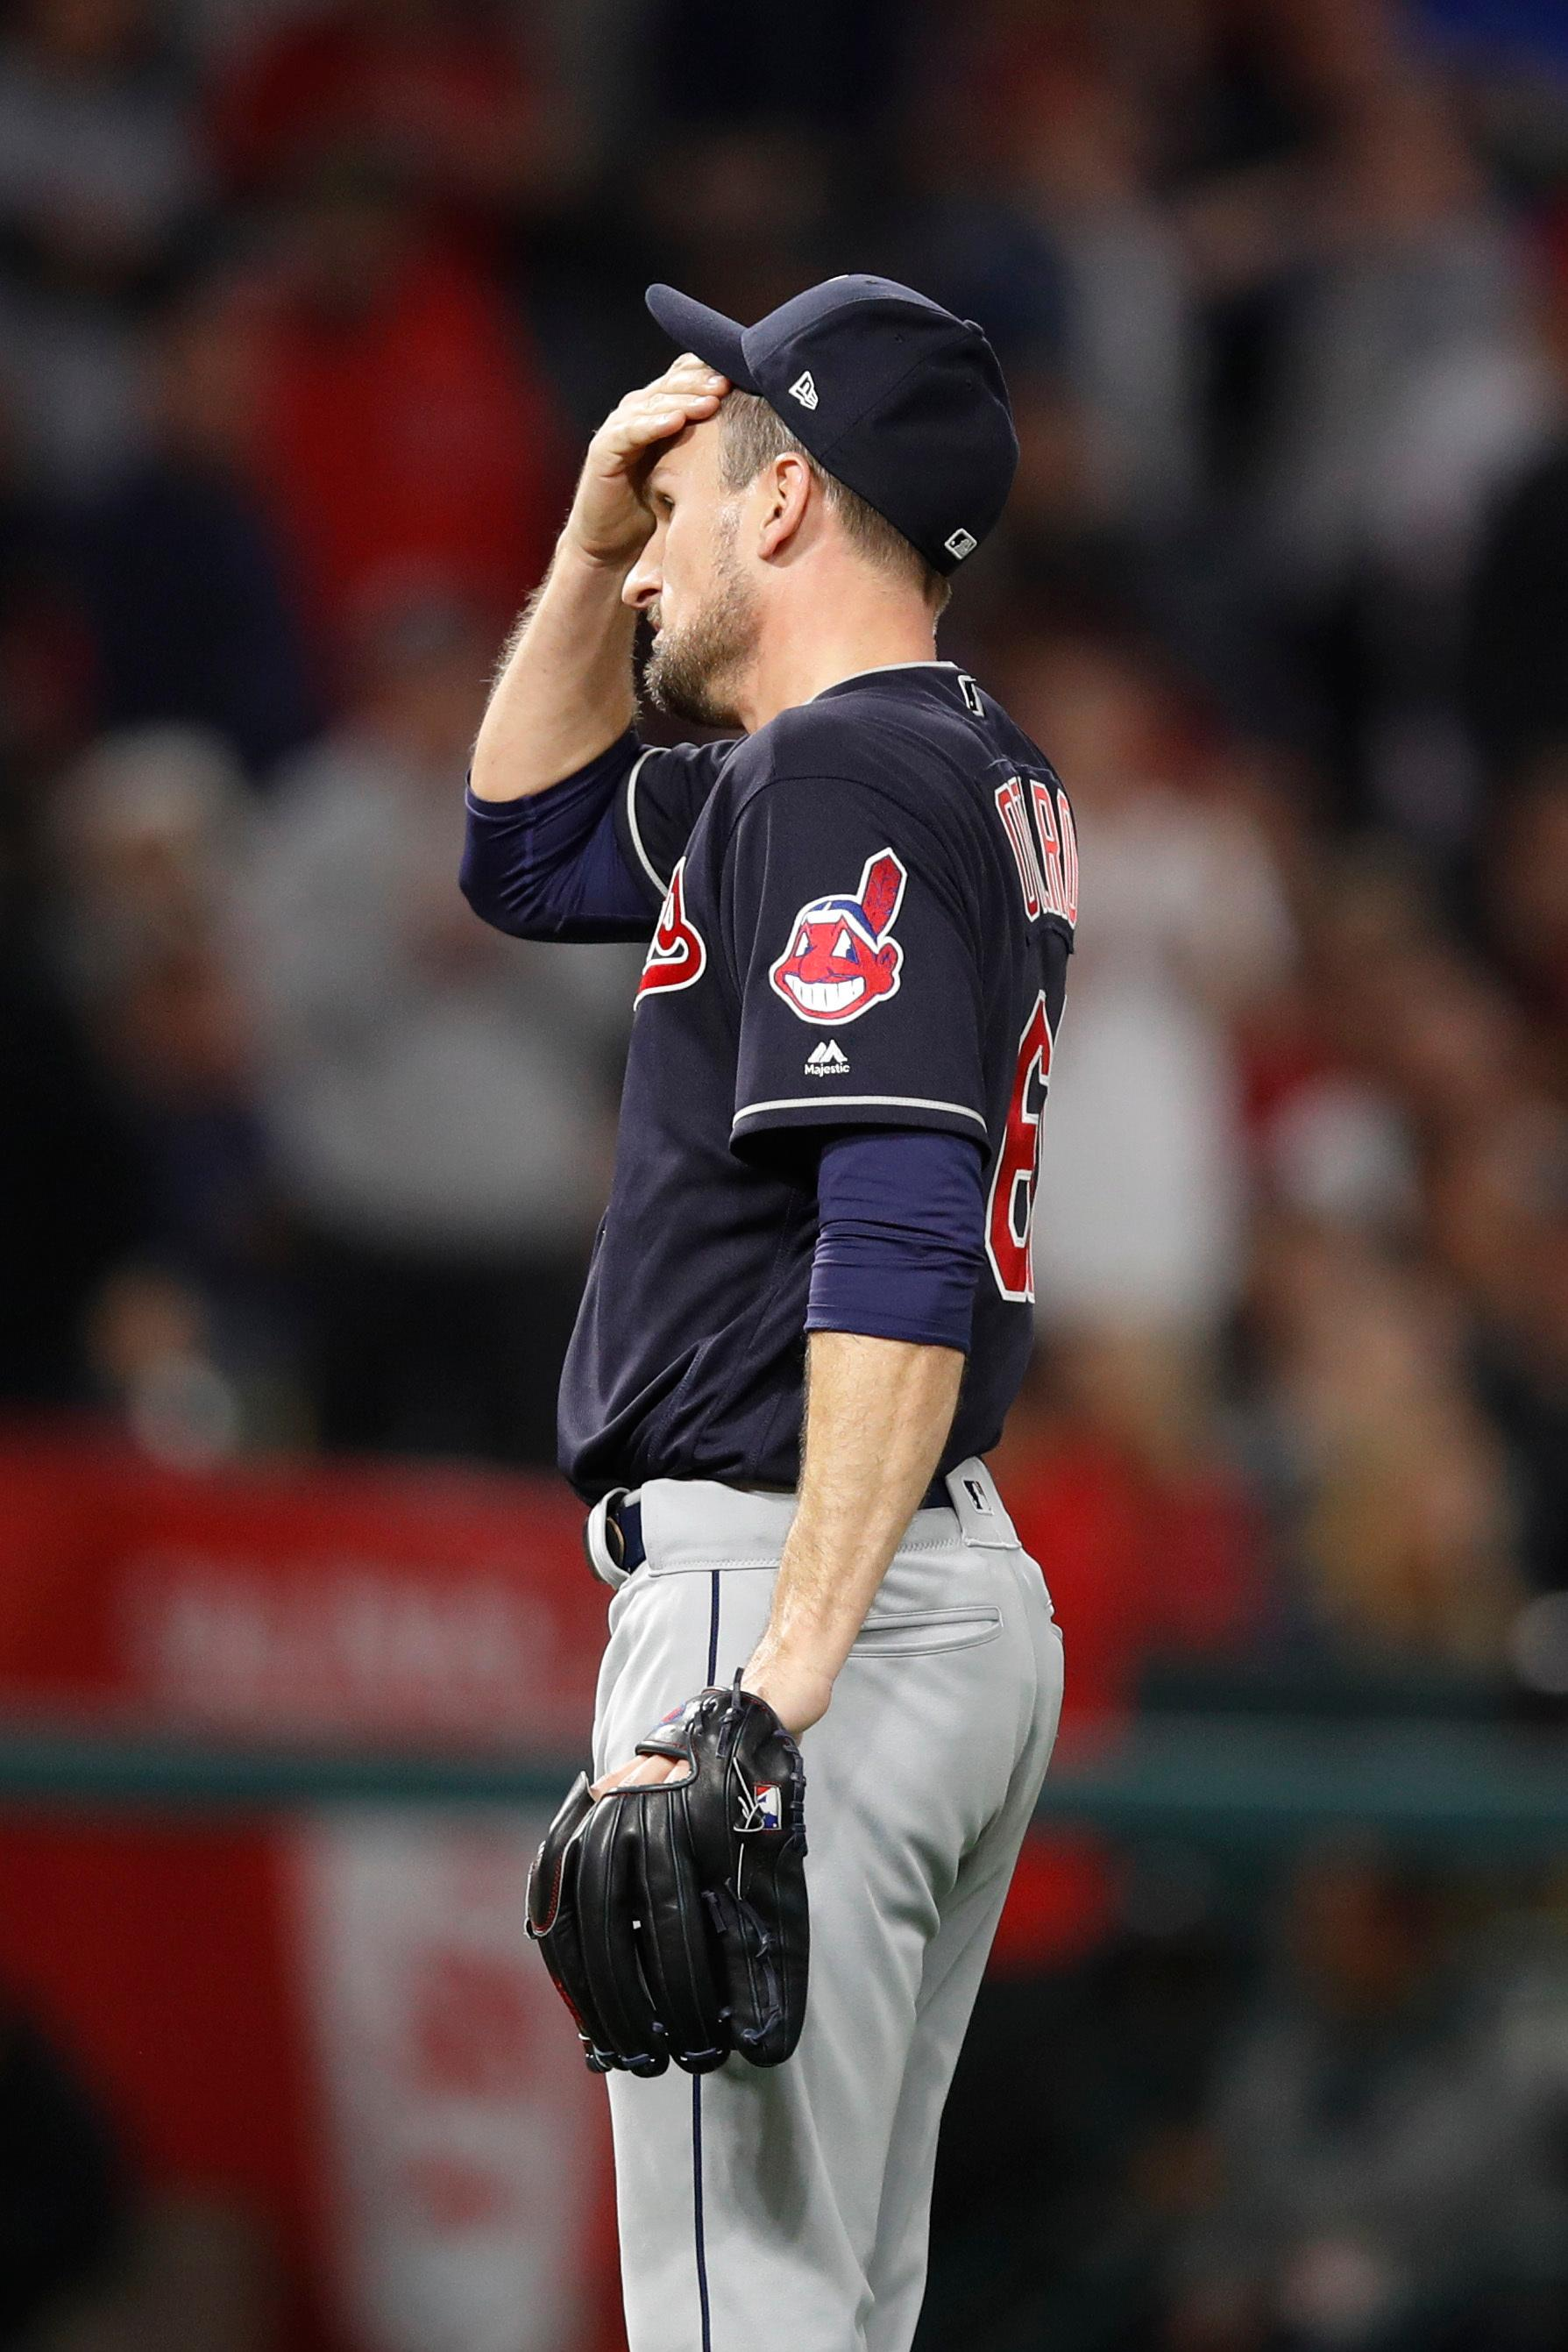 Cleveland Indians relief pitcher Dan Otero wipes his face after giving up a two-RBI double against Los Angeles Angels' Rene Rivera during the fifth inning of a baseball game, Tuesday, April 3, 2018, in Anaheim, Calif. (AP Photo/Jae C. Hong)